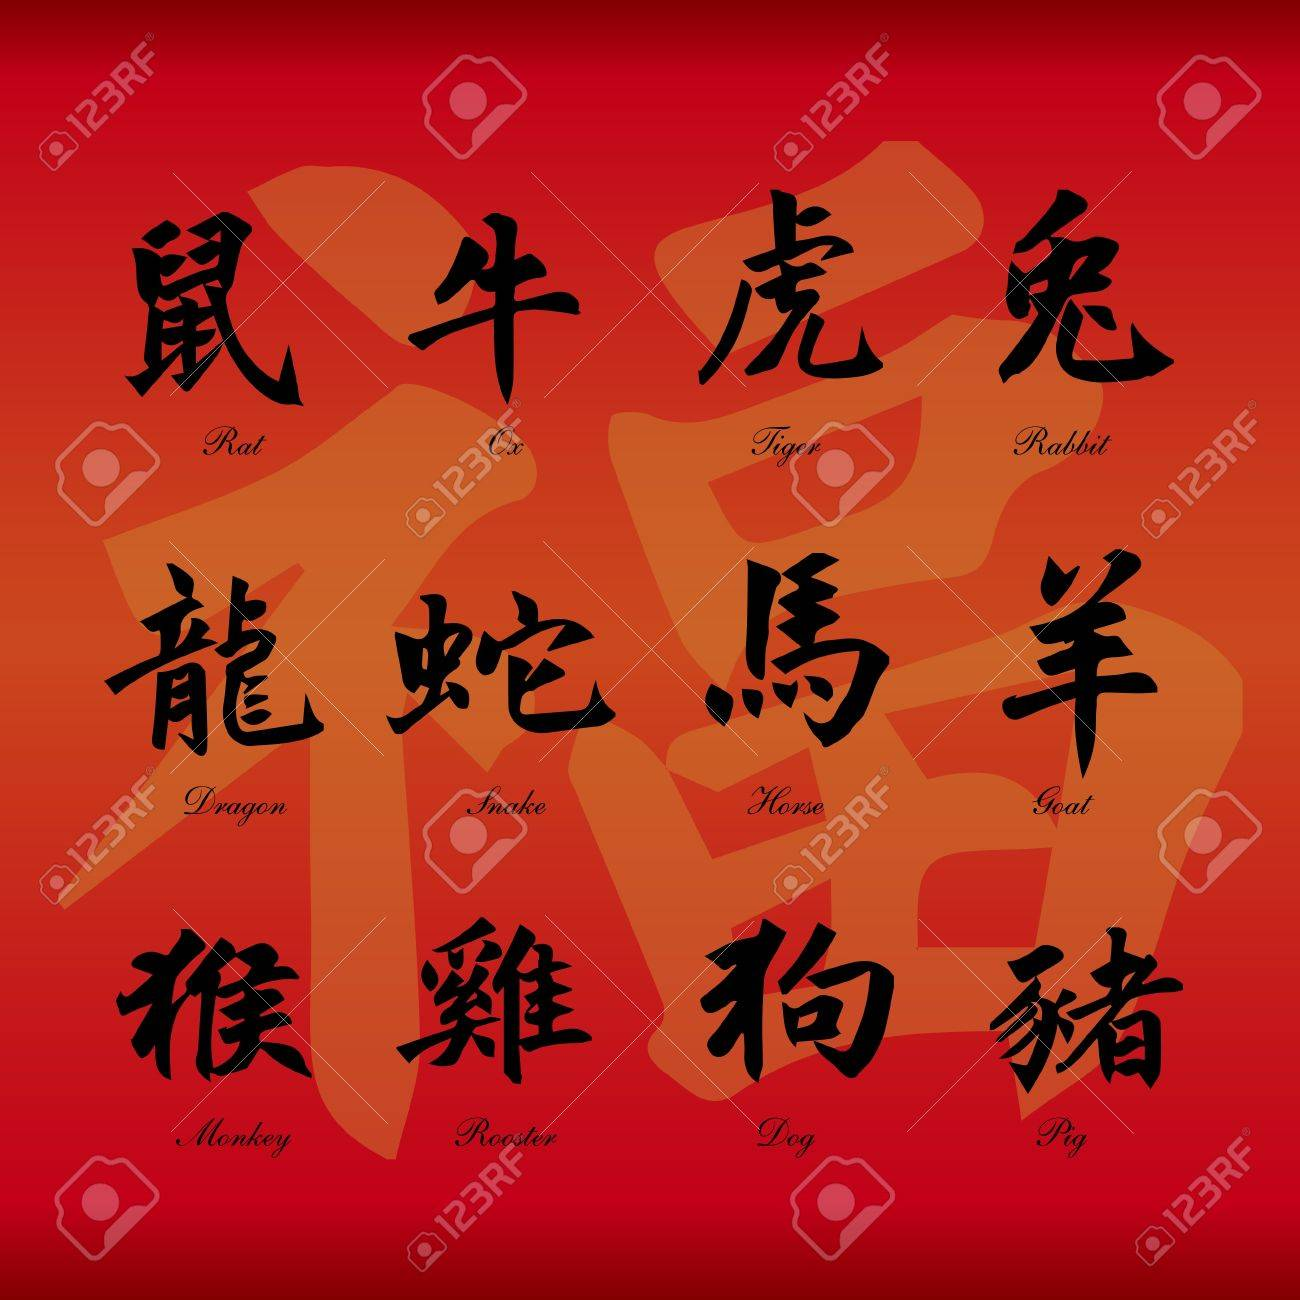 Chinese Zodiac Symbols On Red Paper Background Royalty Free Cliparts